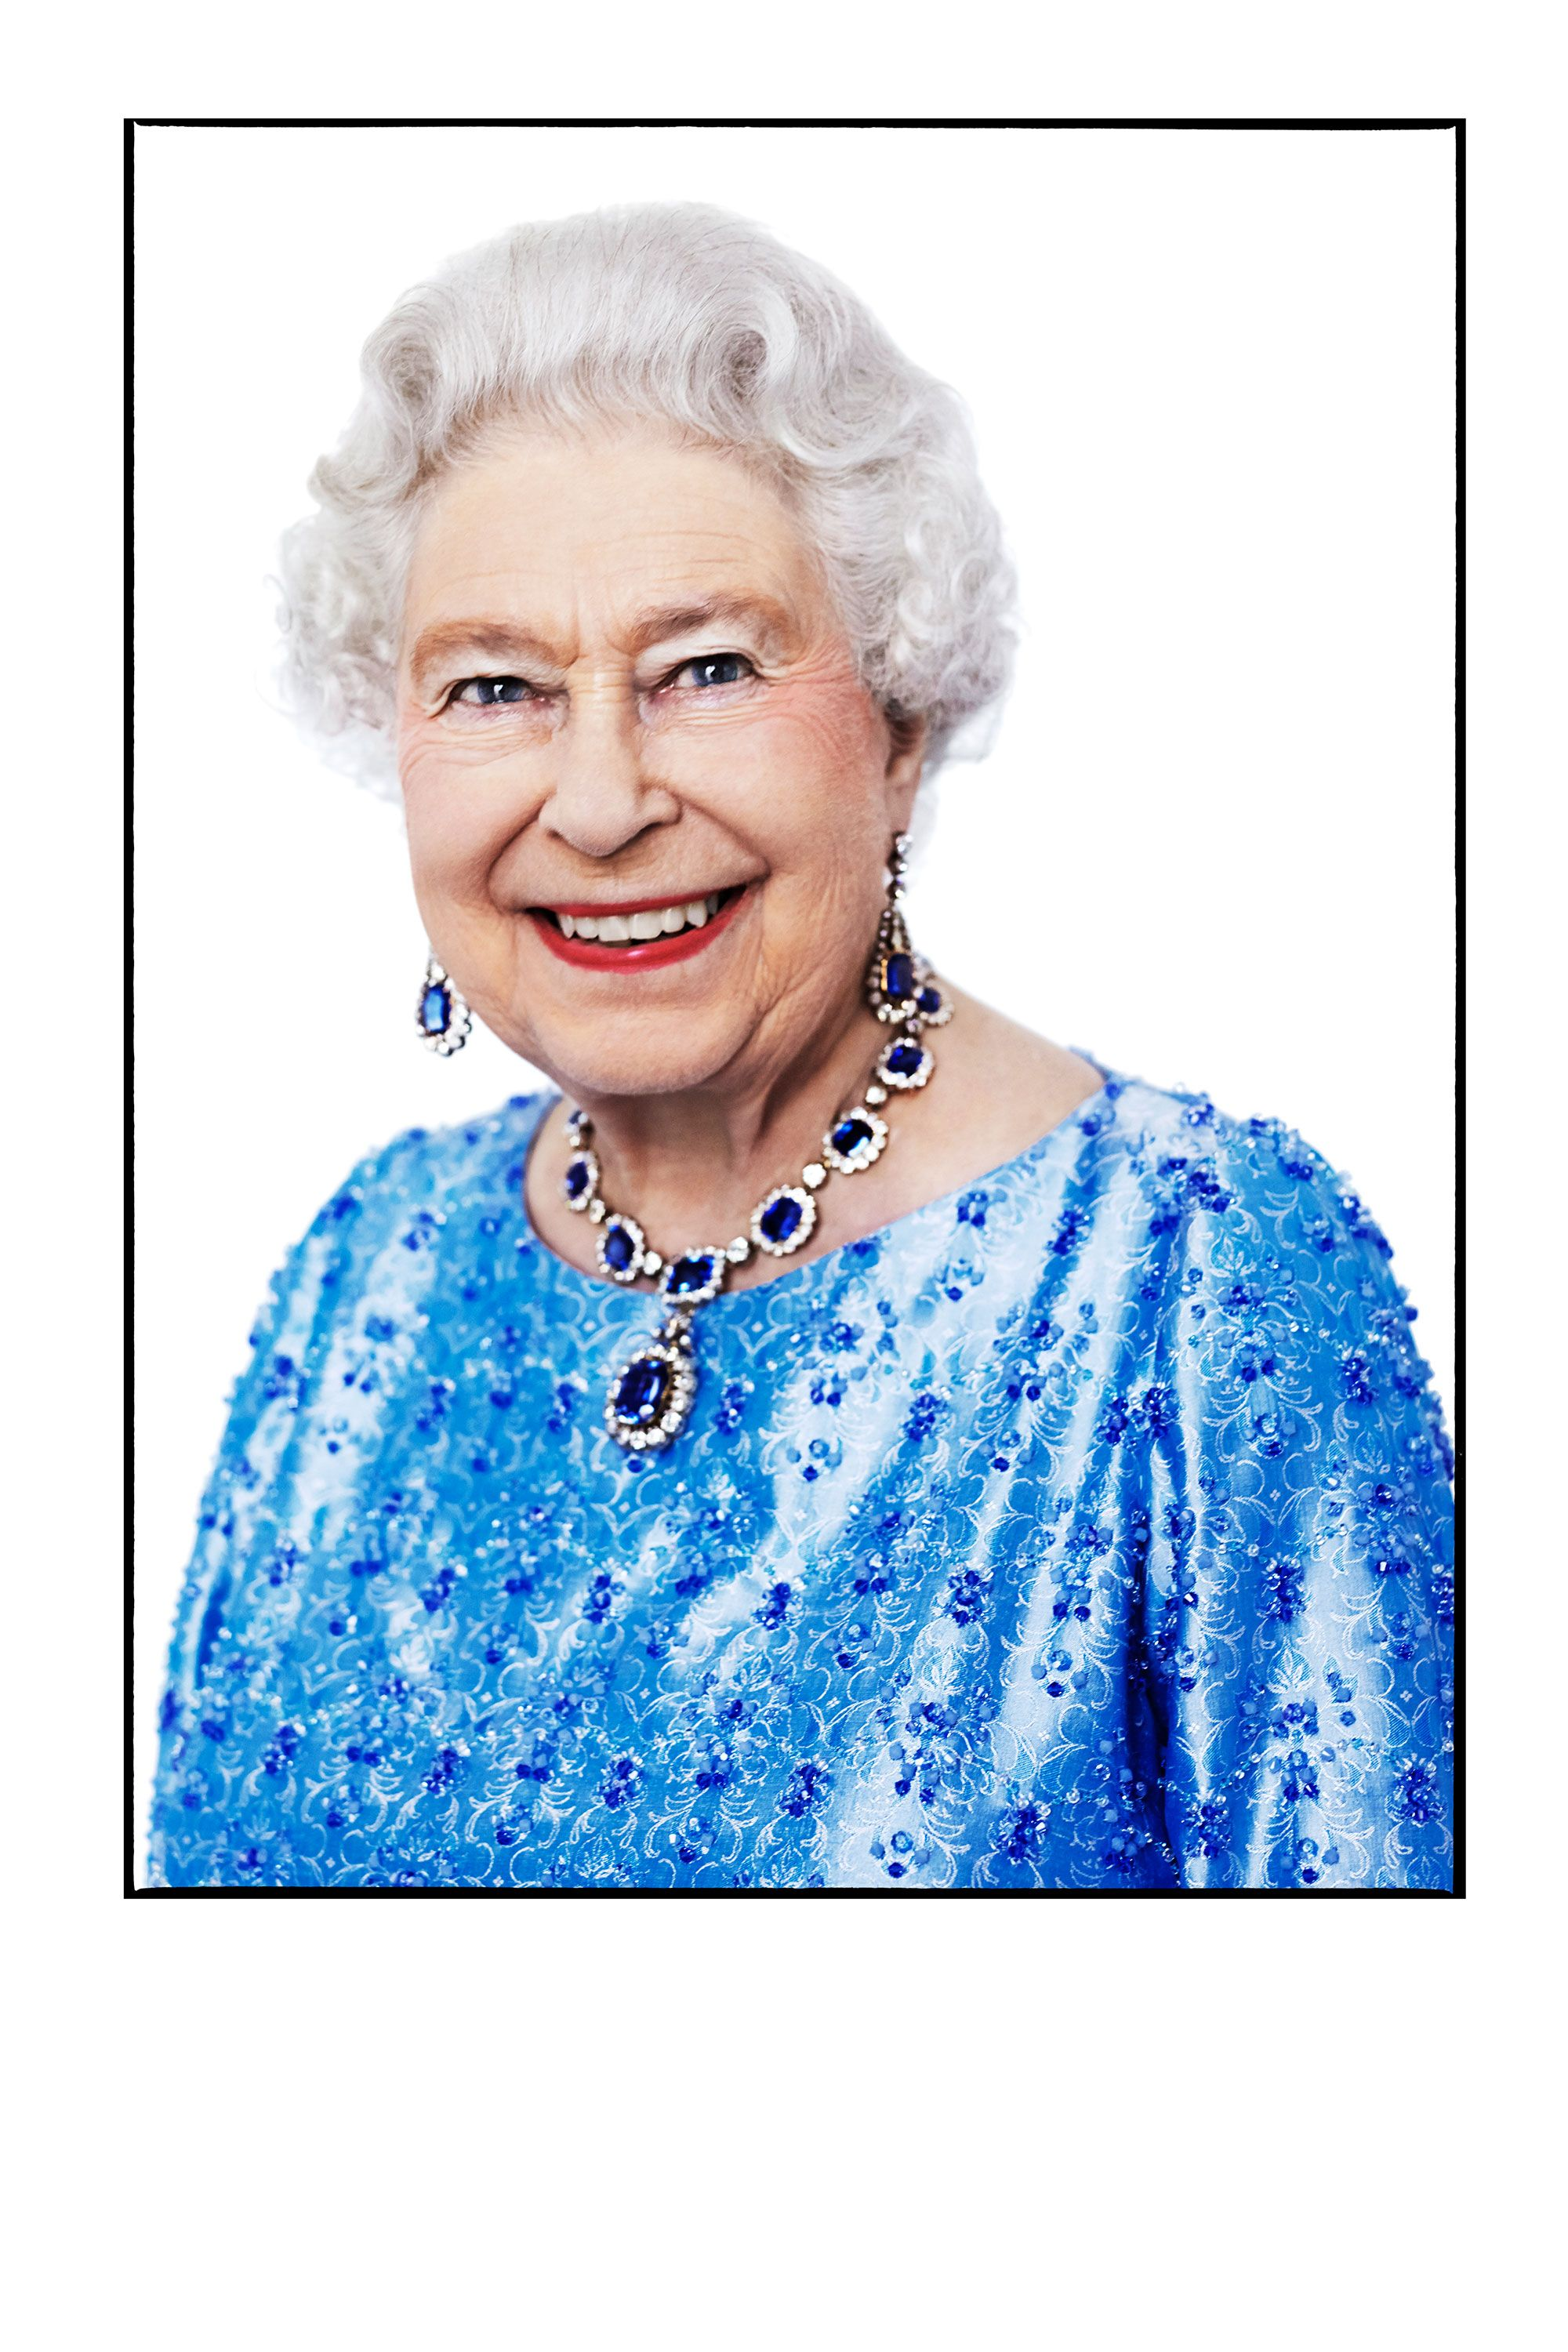 Queen Elizabeth Ii Great Campaign Portraits Queen